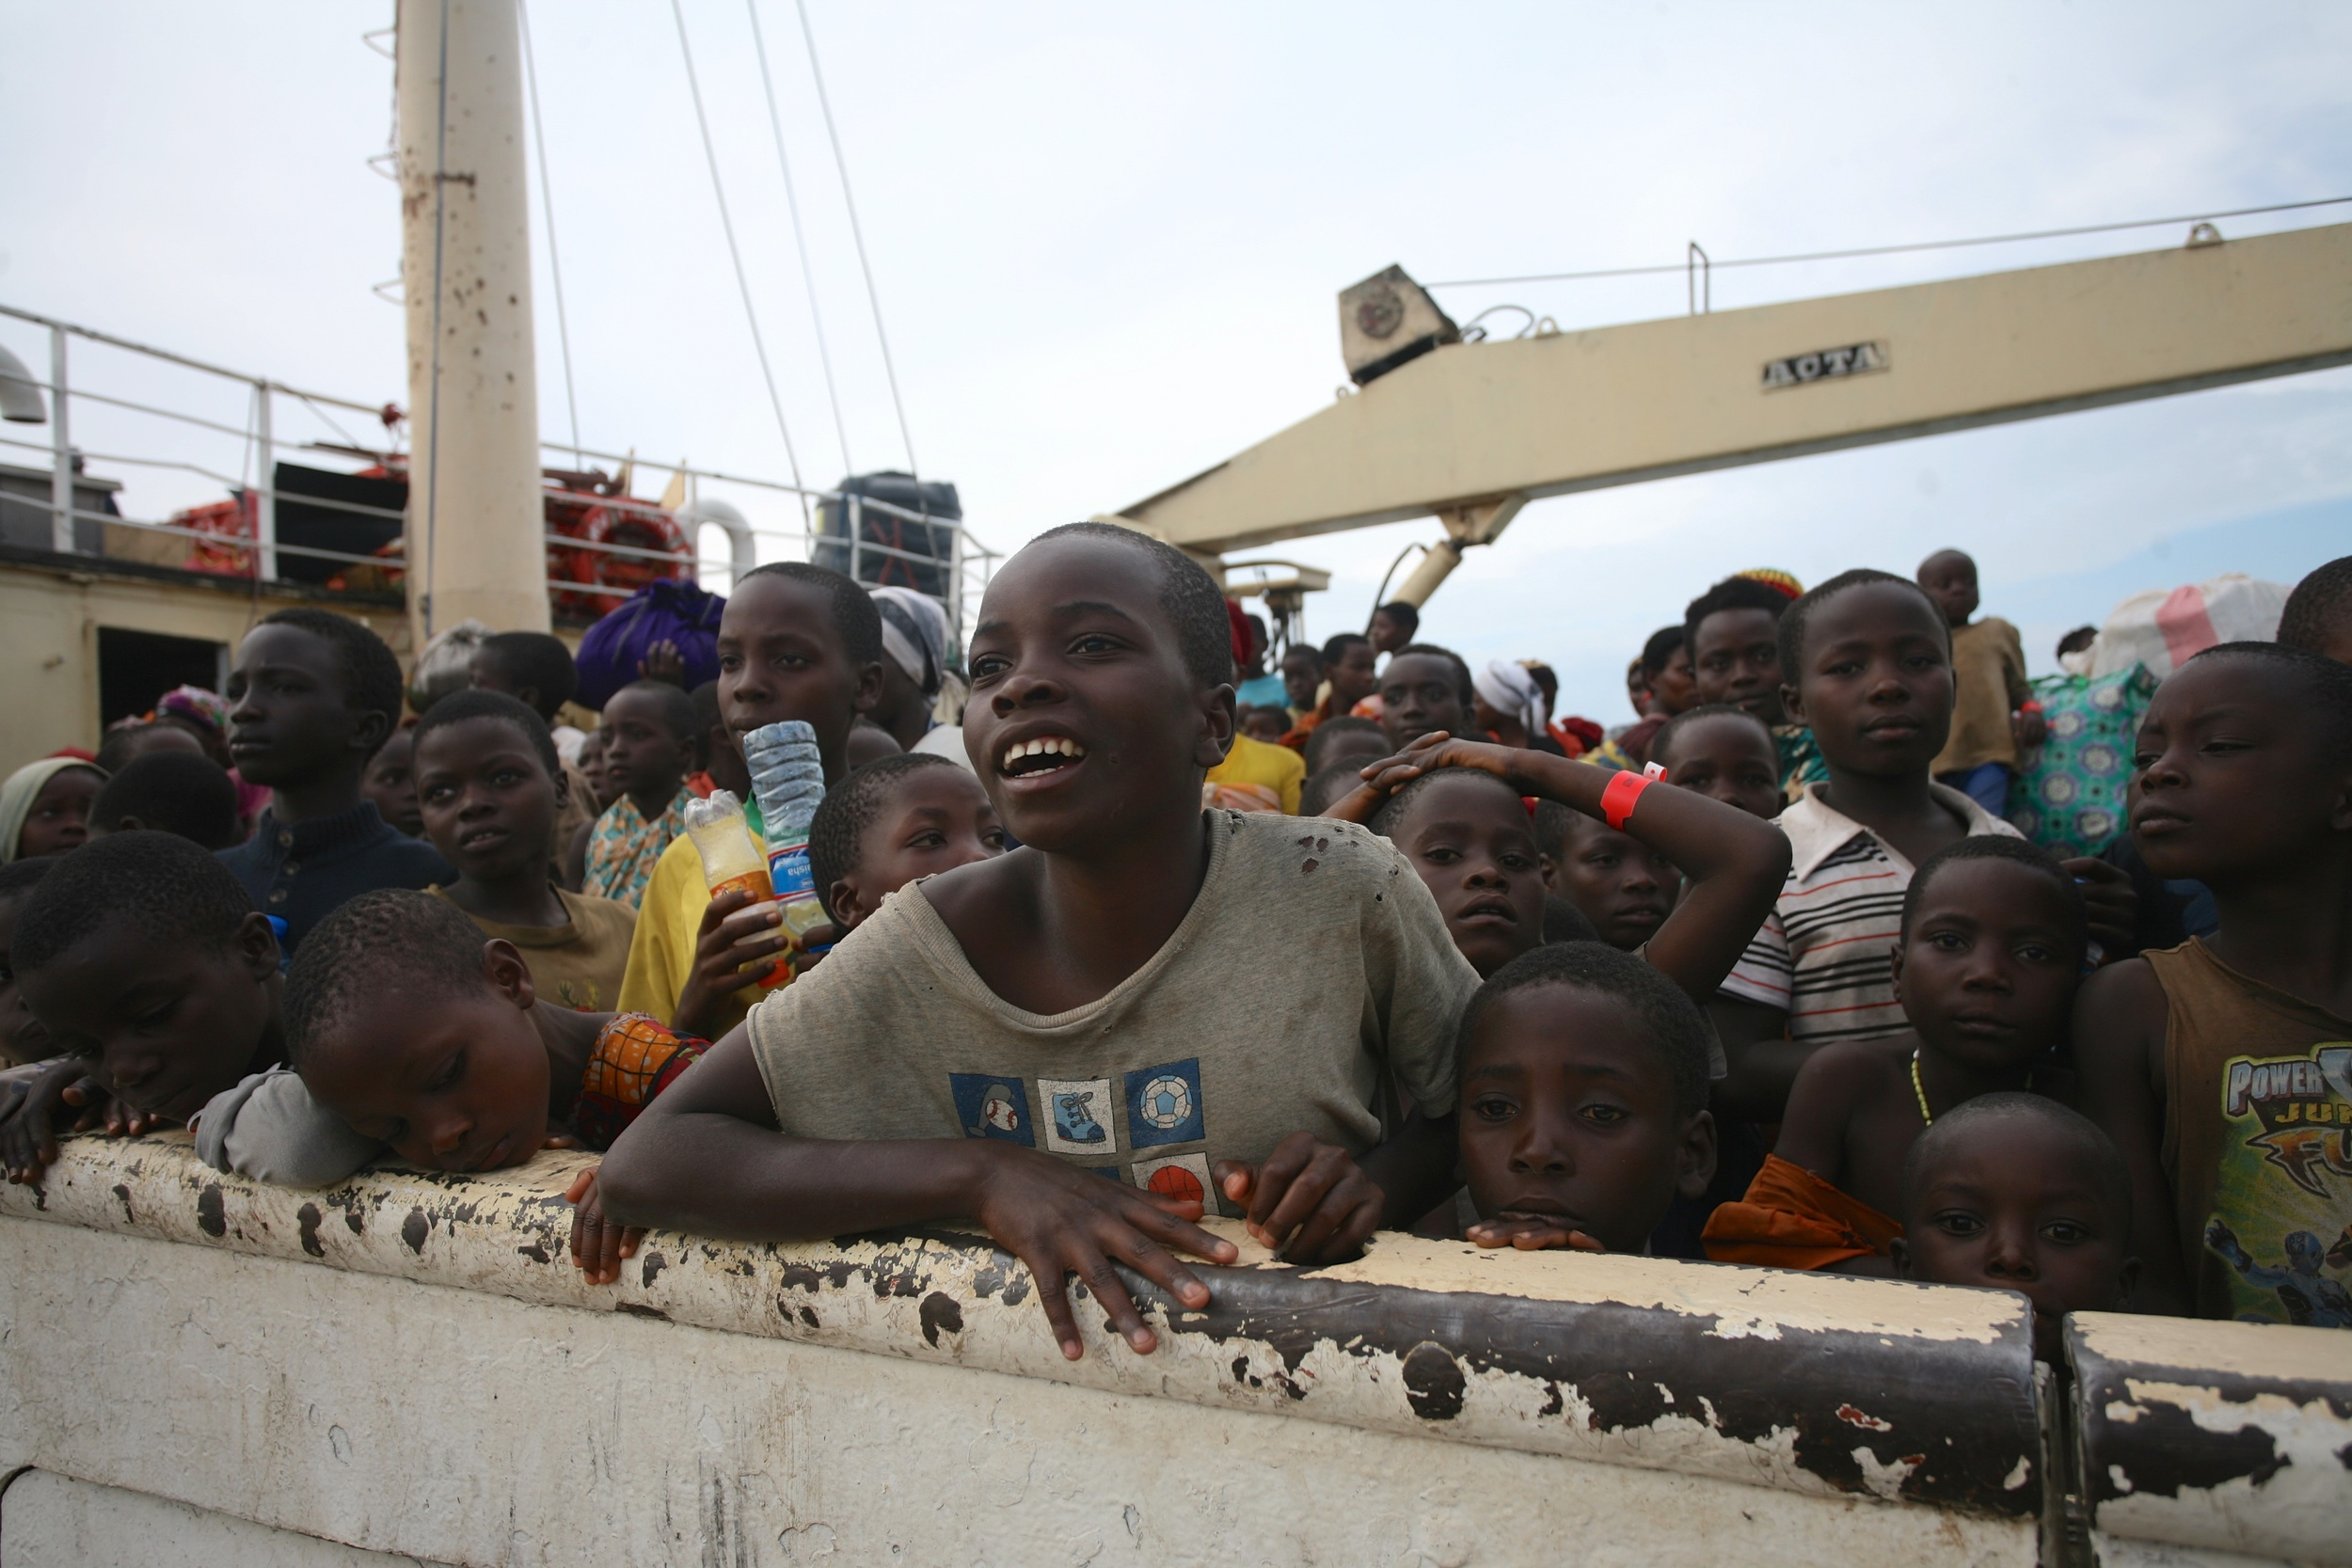 A young Burundian refugee looks out aboard the MV Liemba as it docks in Kigoma, Tanzania